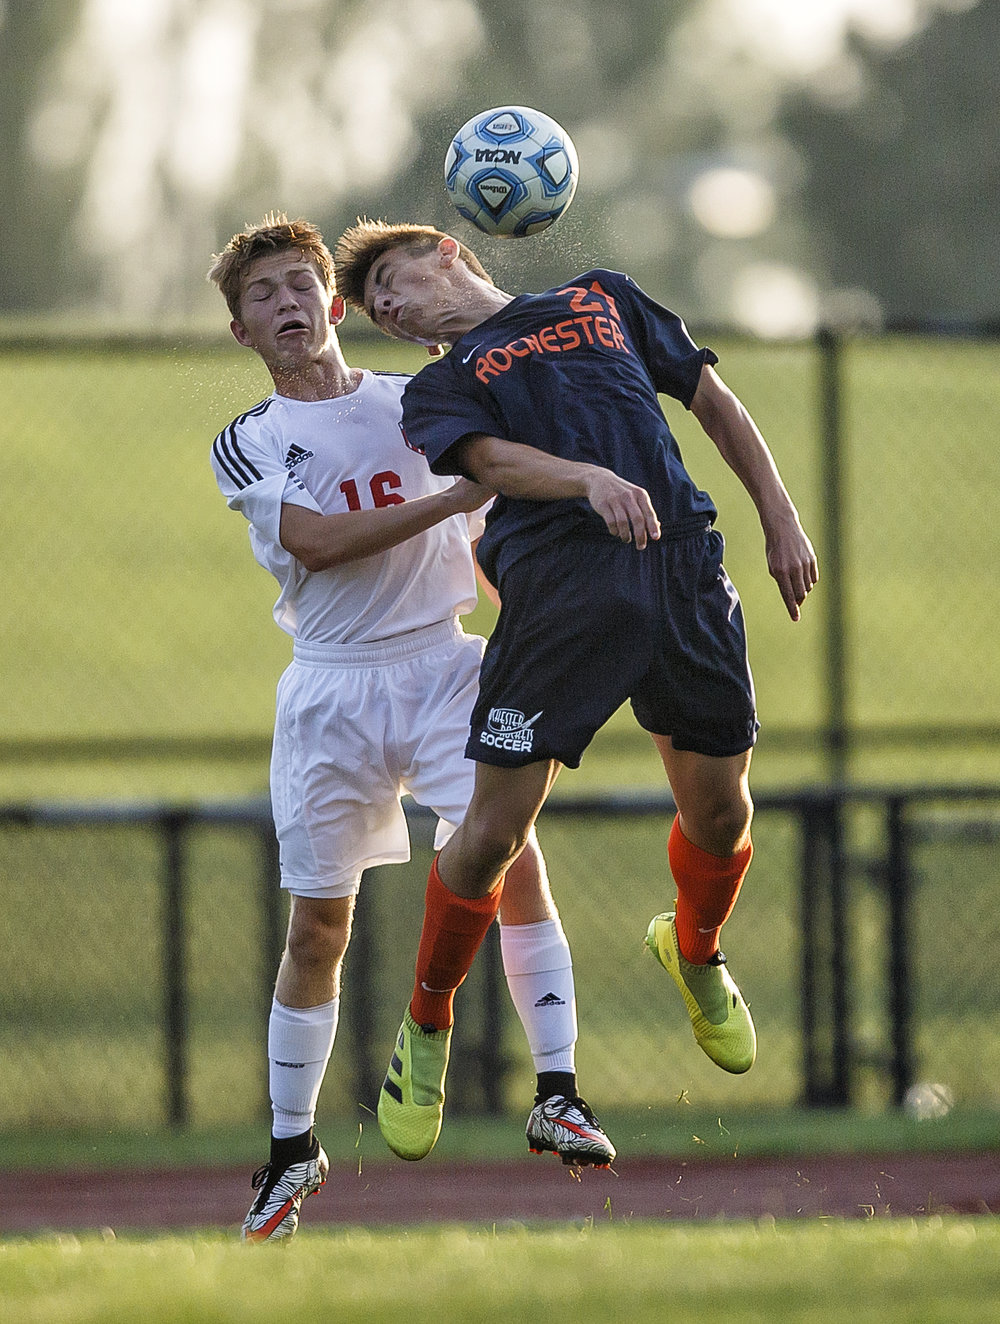 Rochester's Justin Meadows (21) wins a header over Glenwood's Matt Klein (16) in the first half at Glenwood High School, Tuesday, Aug. 30, 2016, in Chatham, Ill. Justin L. Fowler/The State Journal-Register